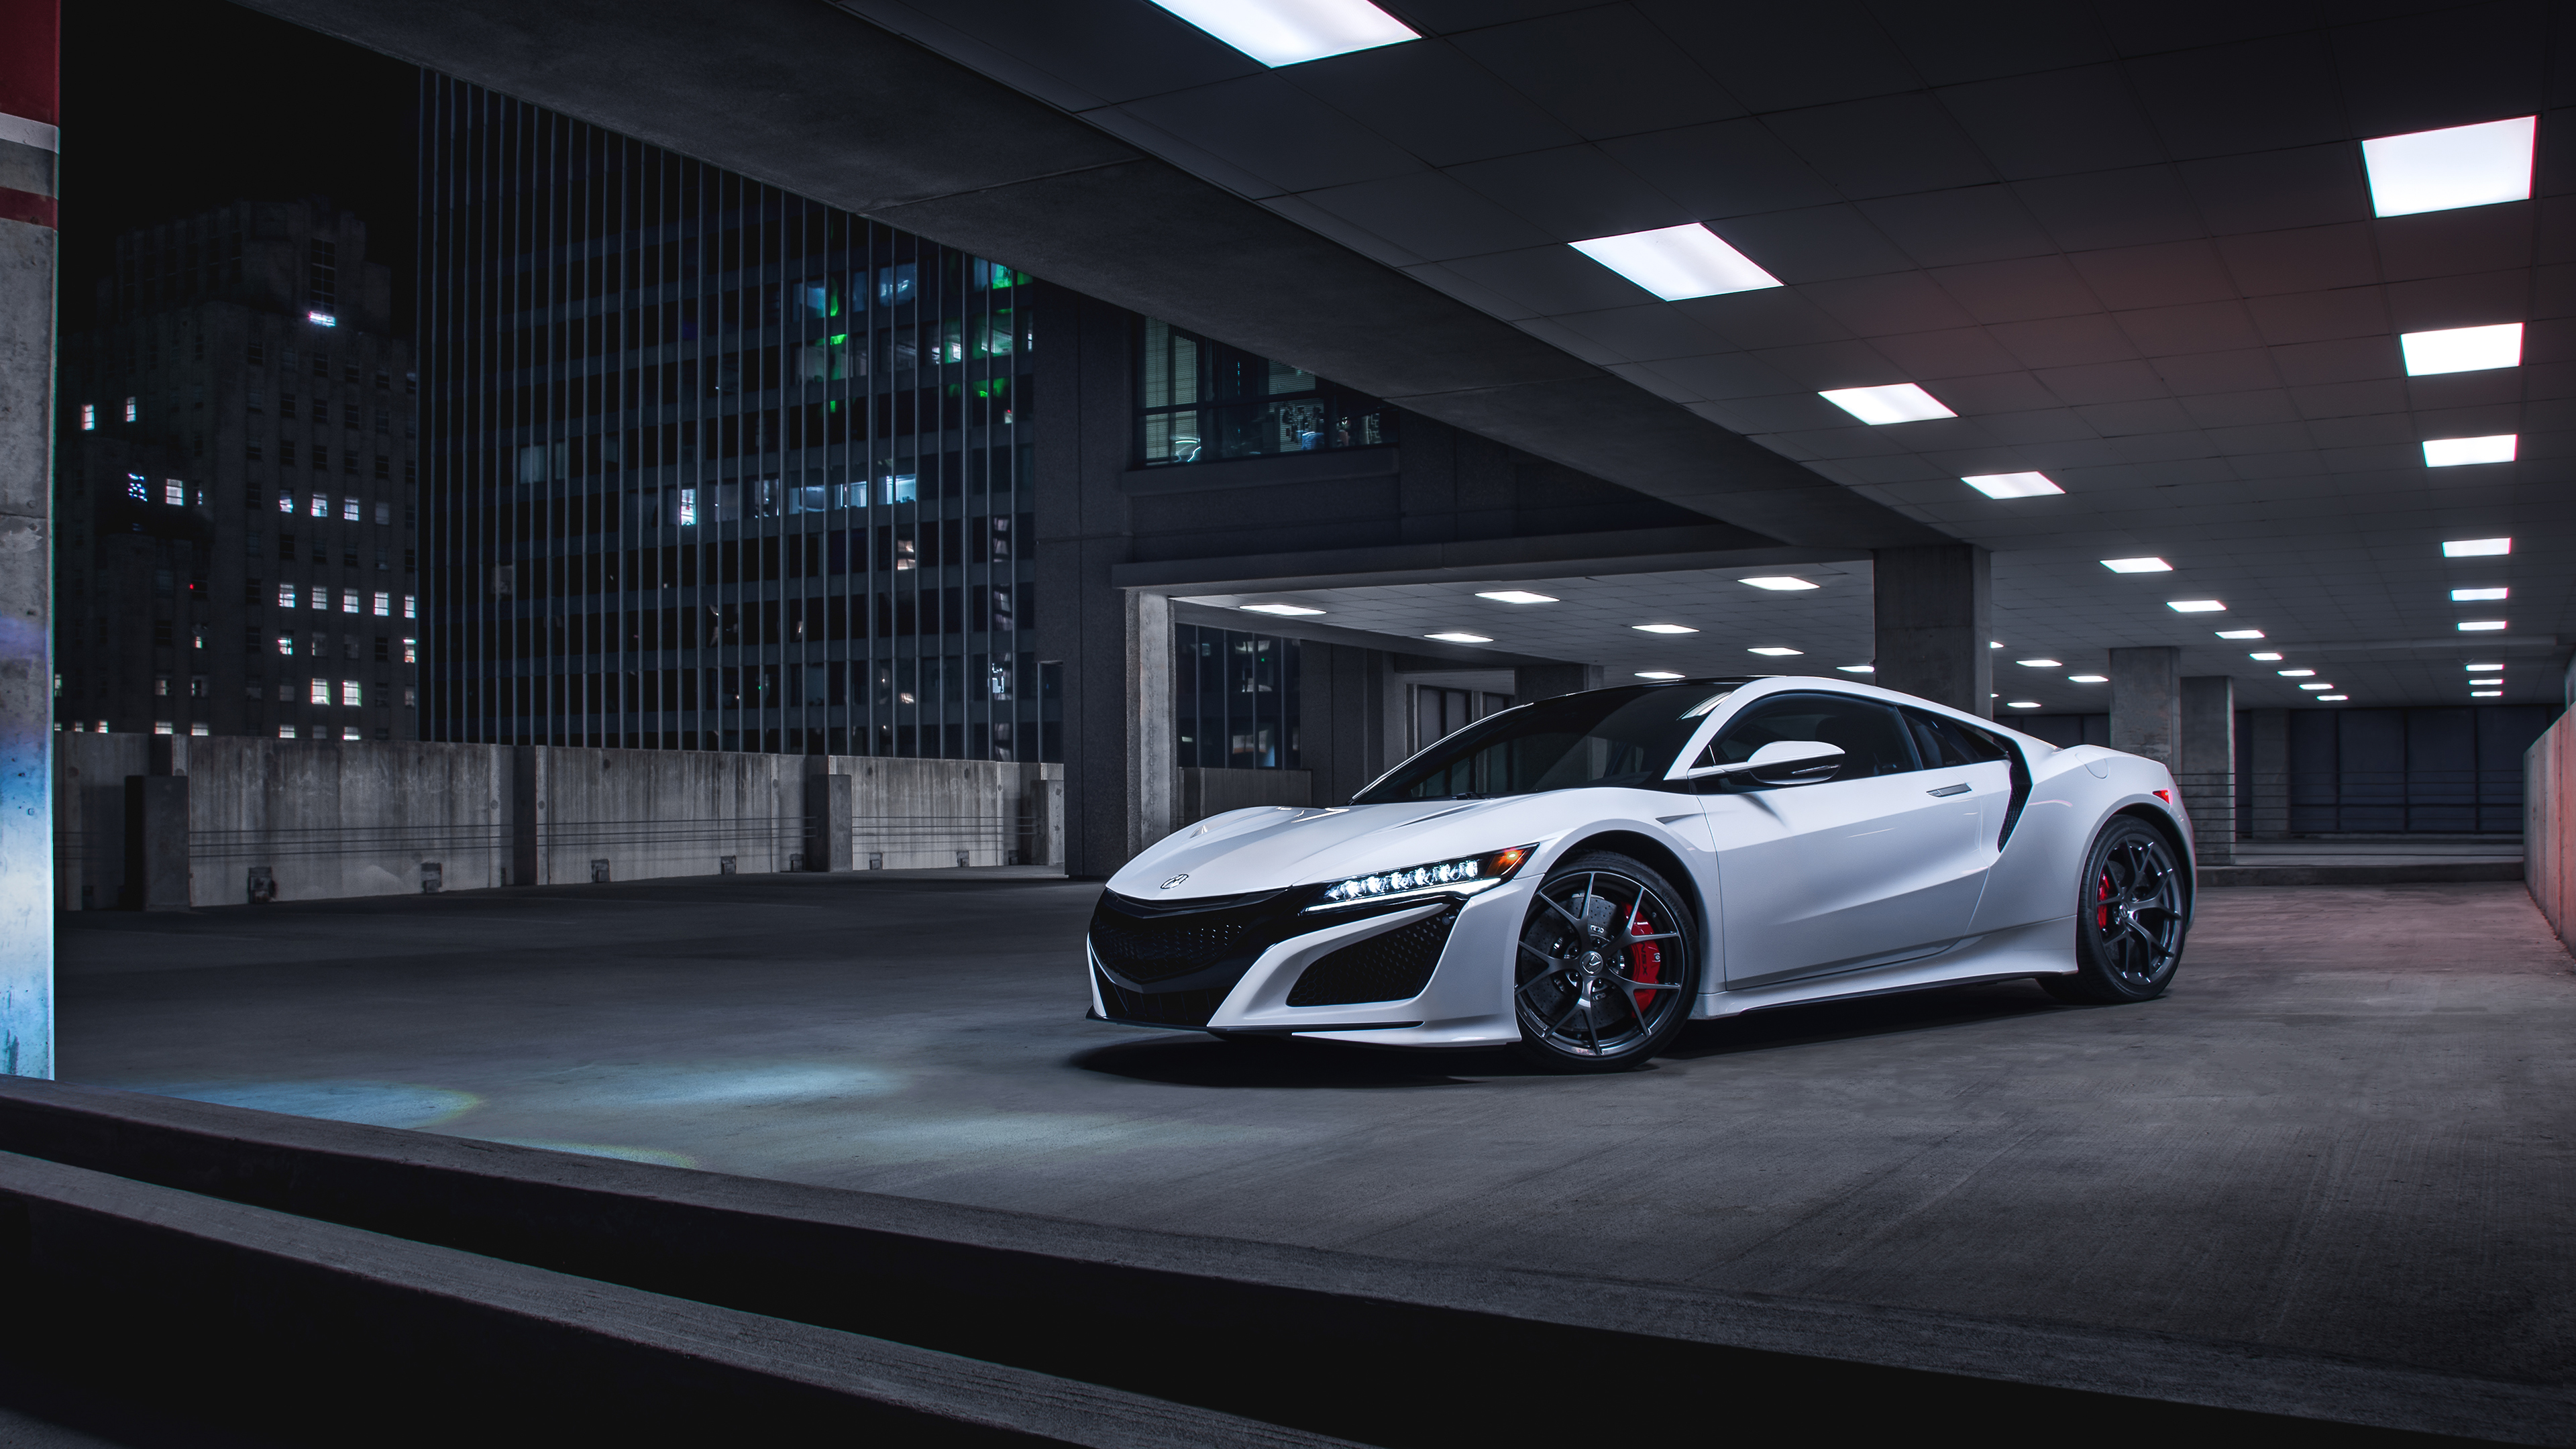 Acura Nsx 2019 4k Wallpapers Hd Wallpapers